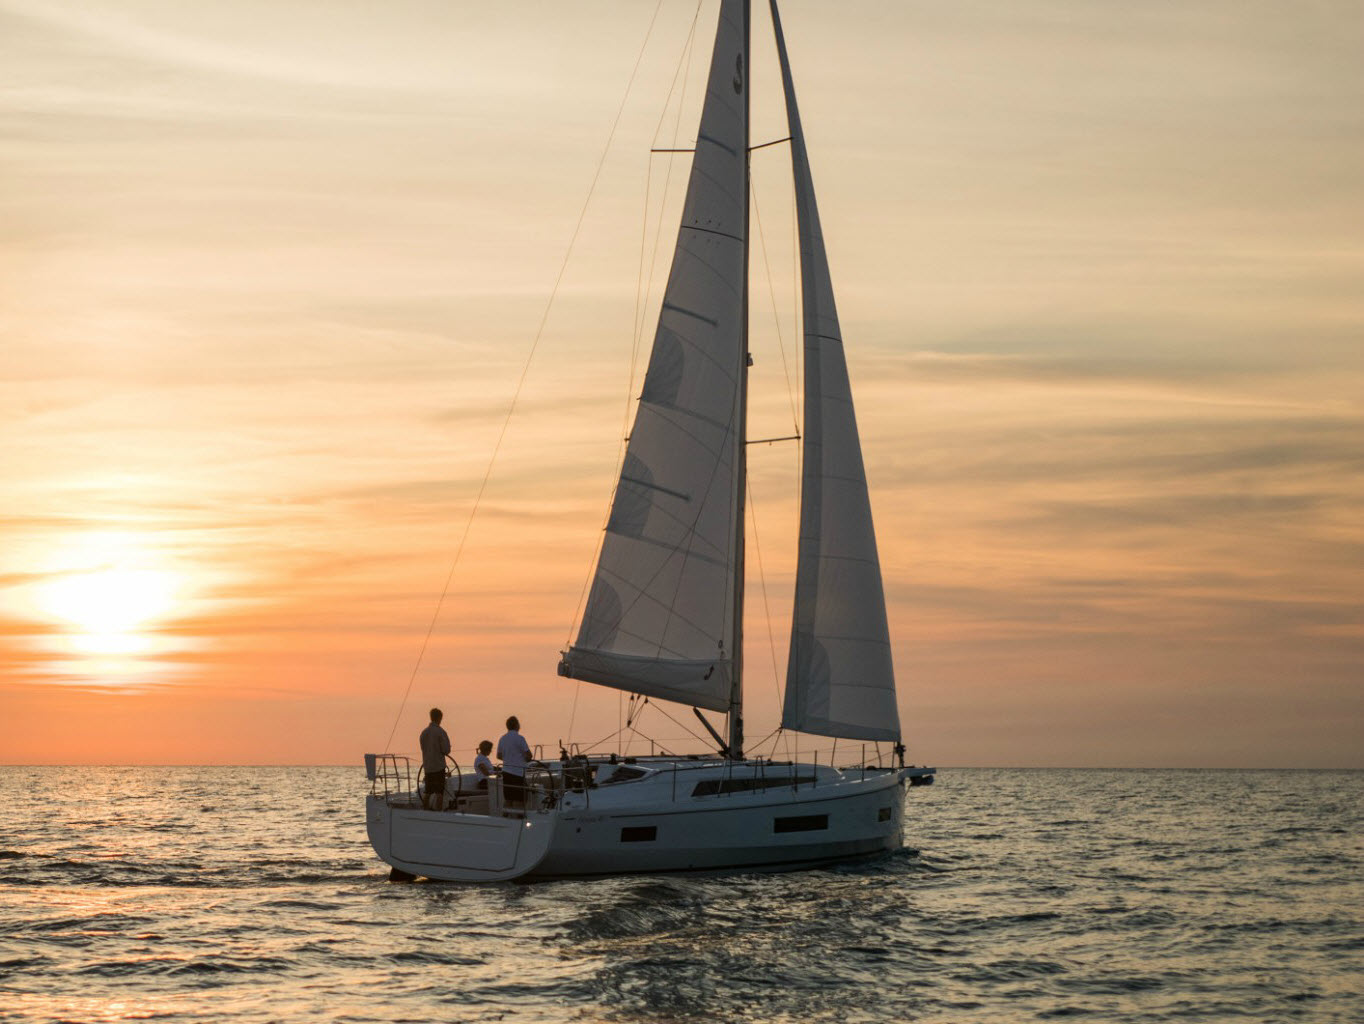 Making your charter boat investment count